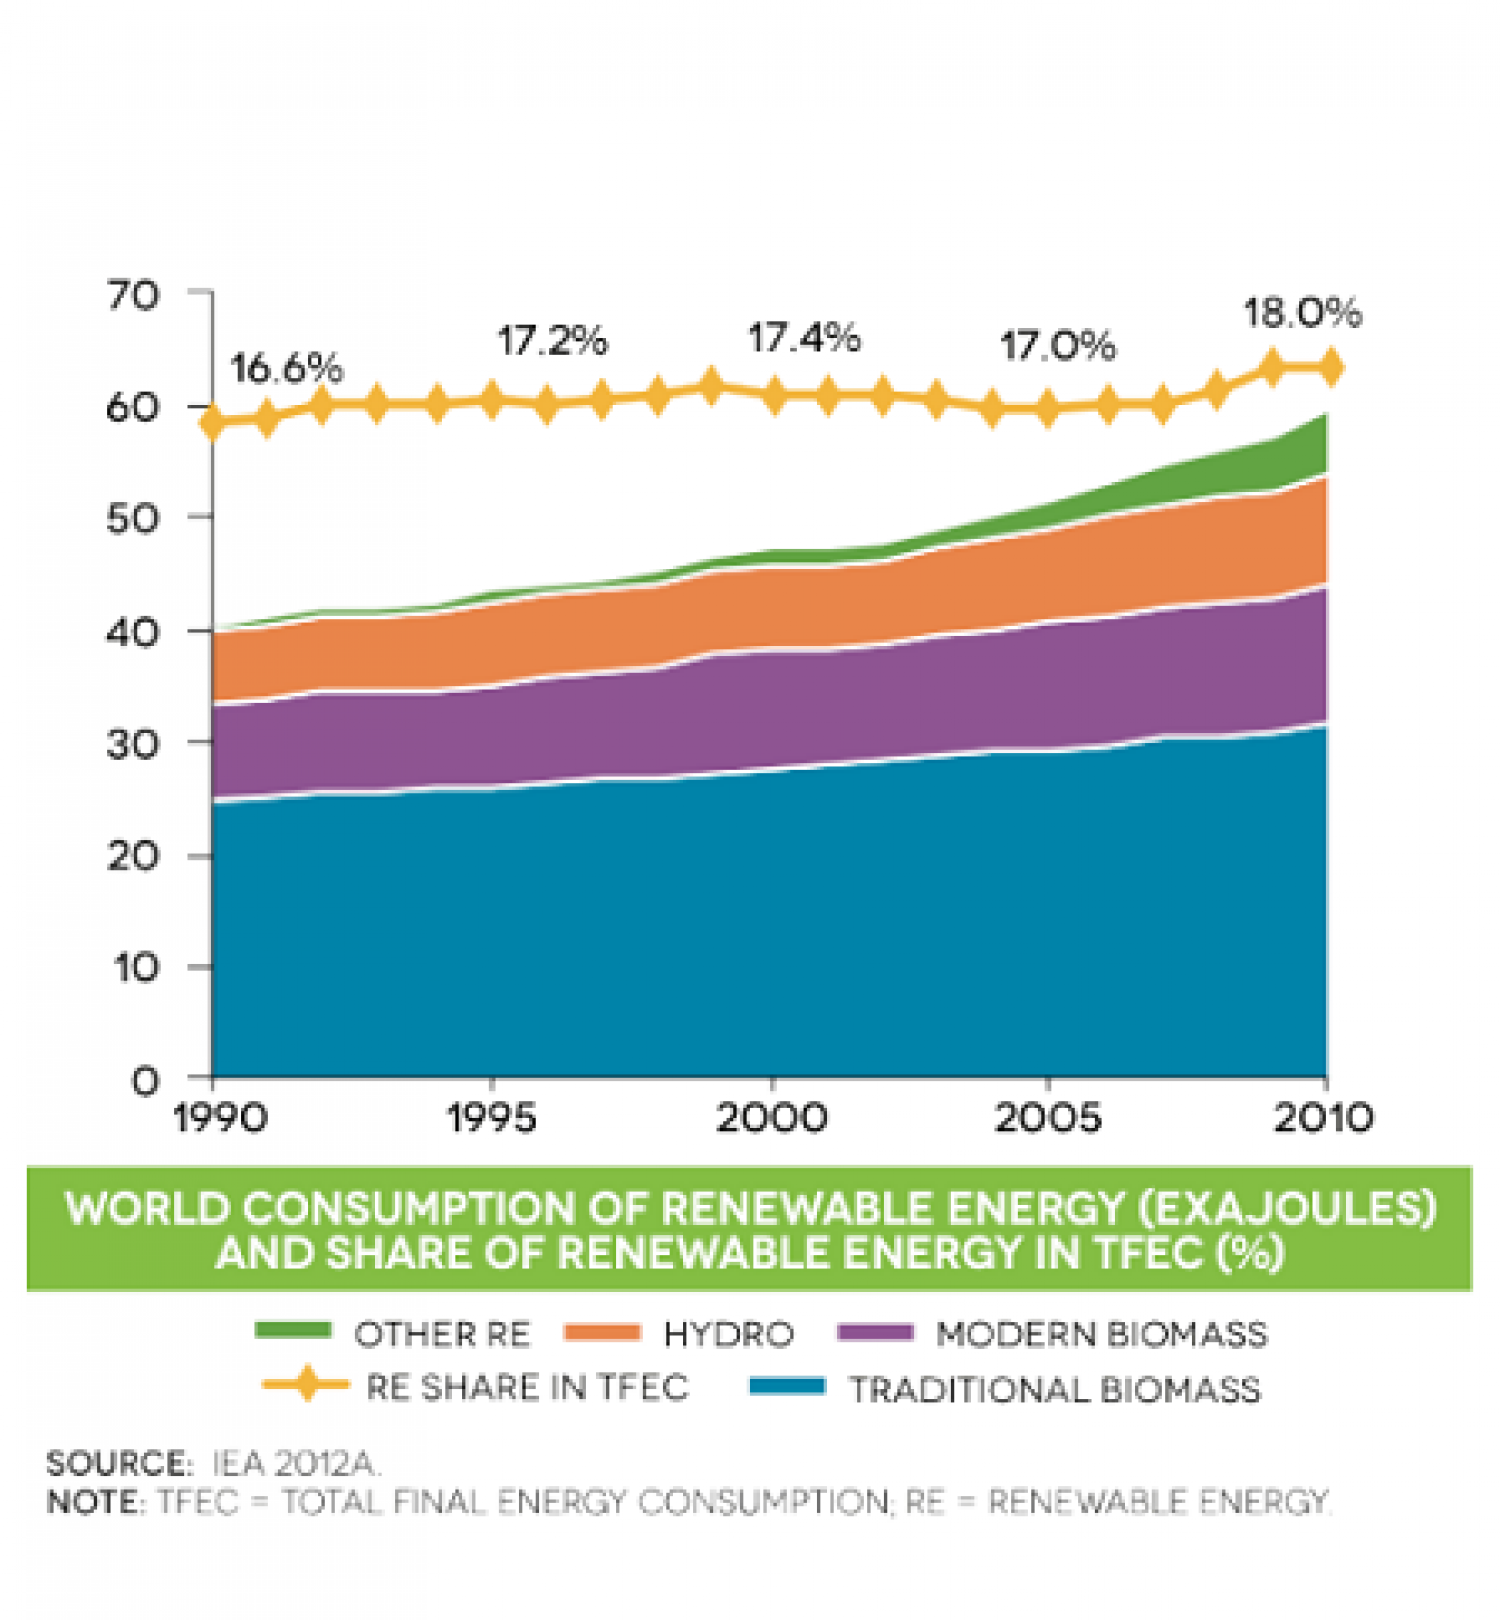 World consumption of renewable energy (Exajoules) and share of renewable energy in TFEC(%) Infographic